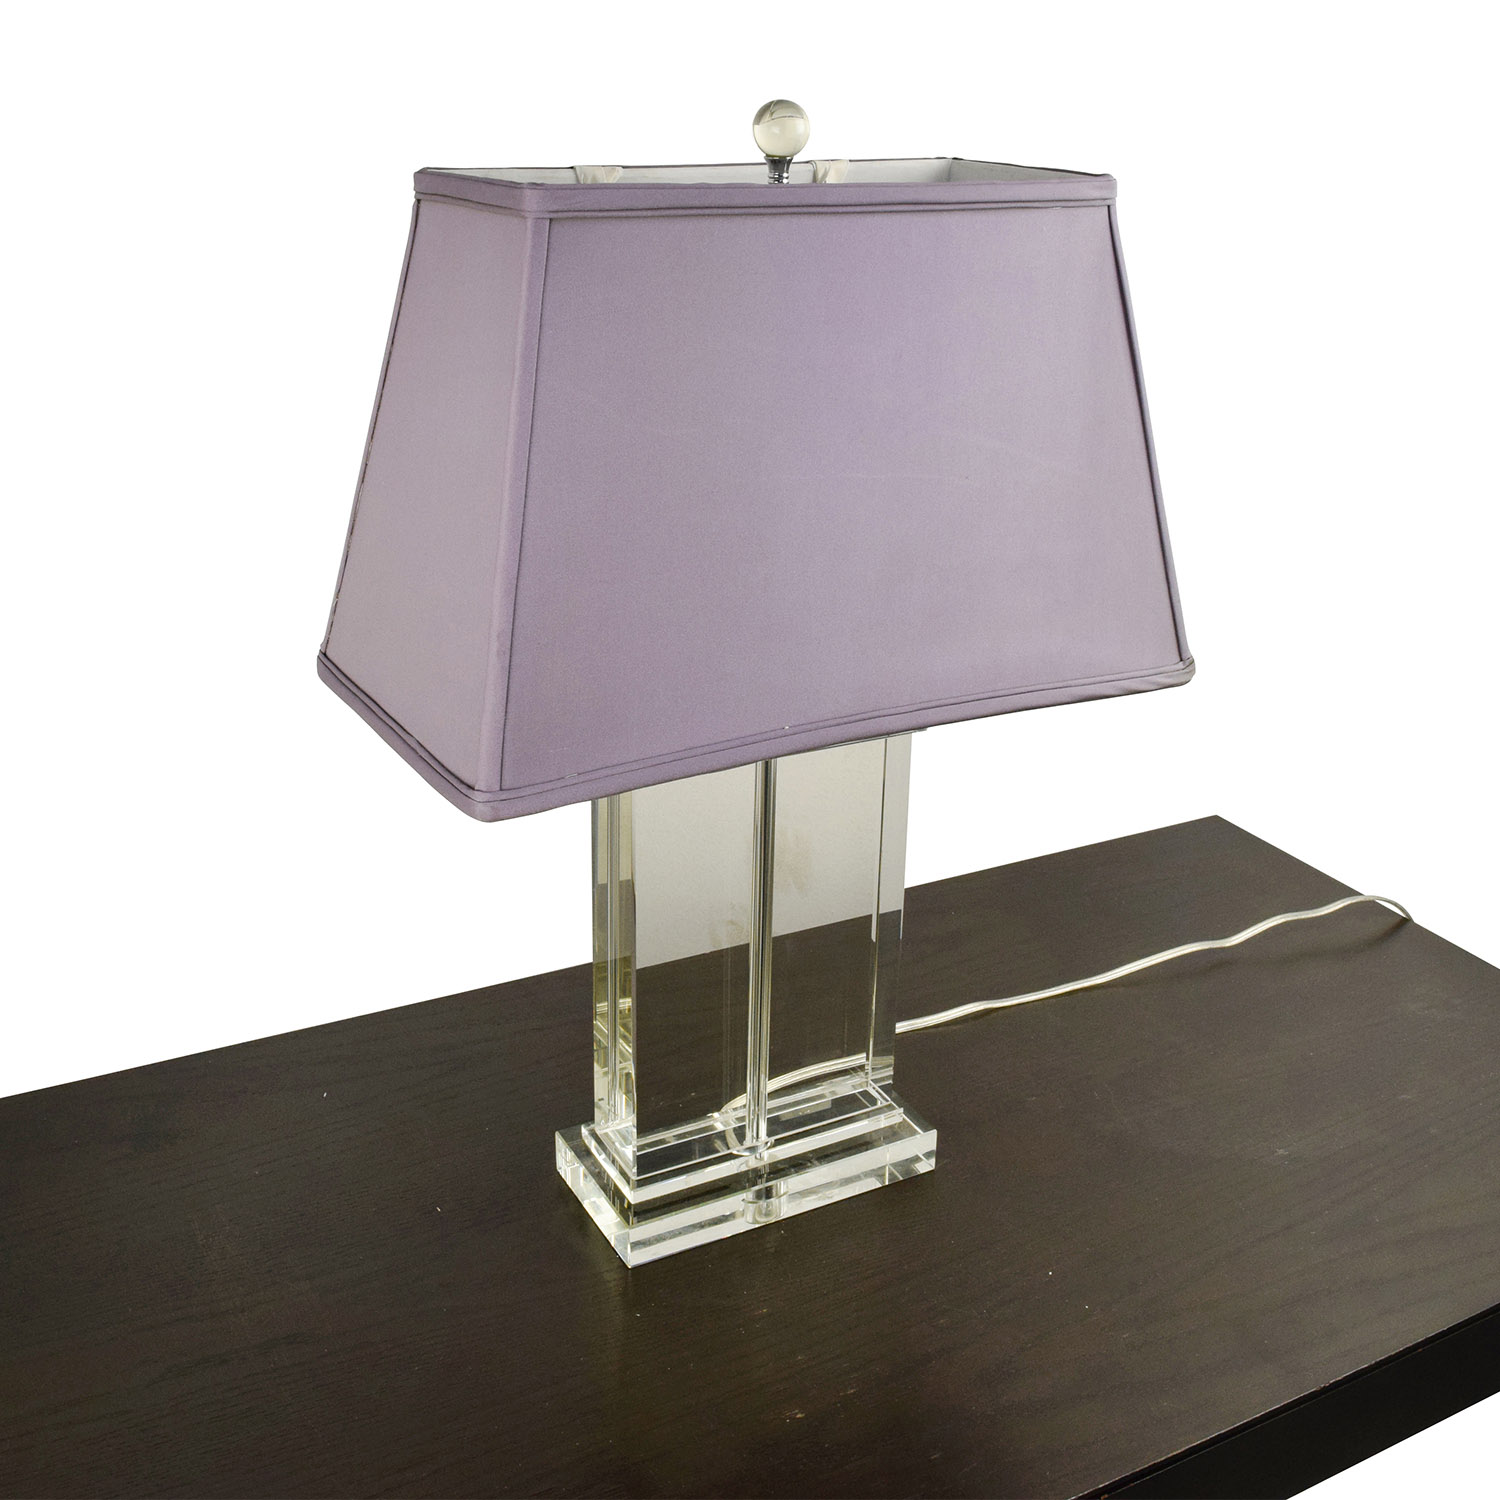 Glass Base Lamp with Lavender Shade / Decor